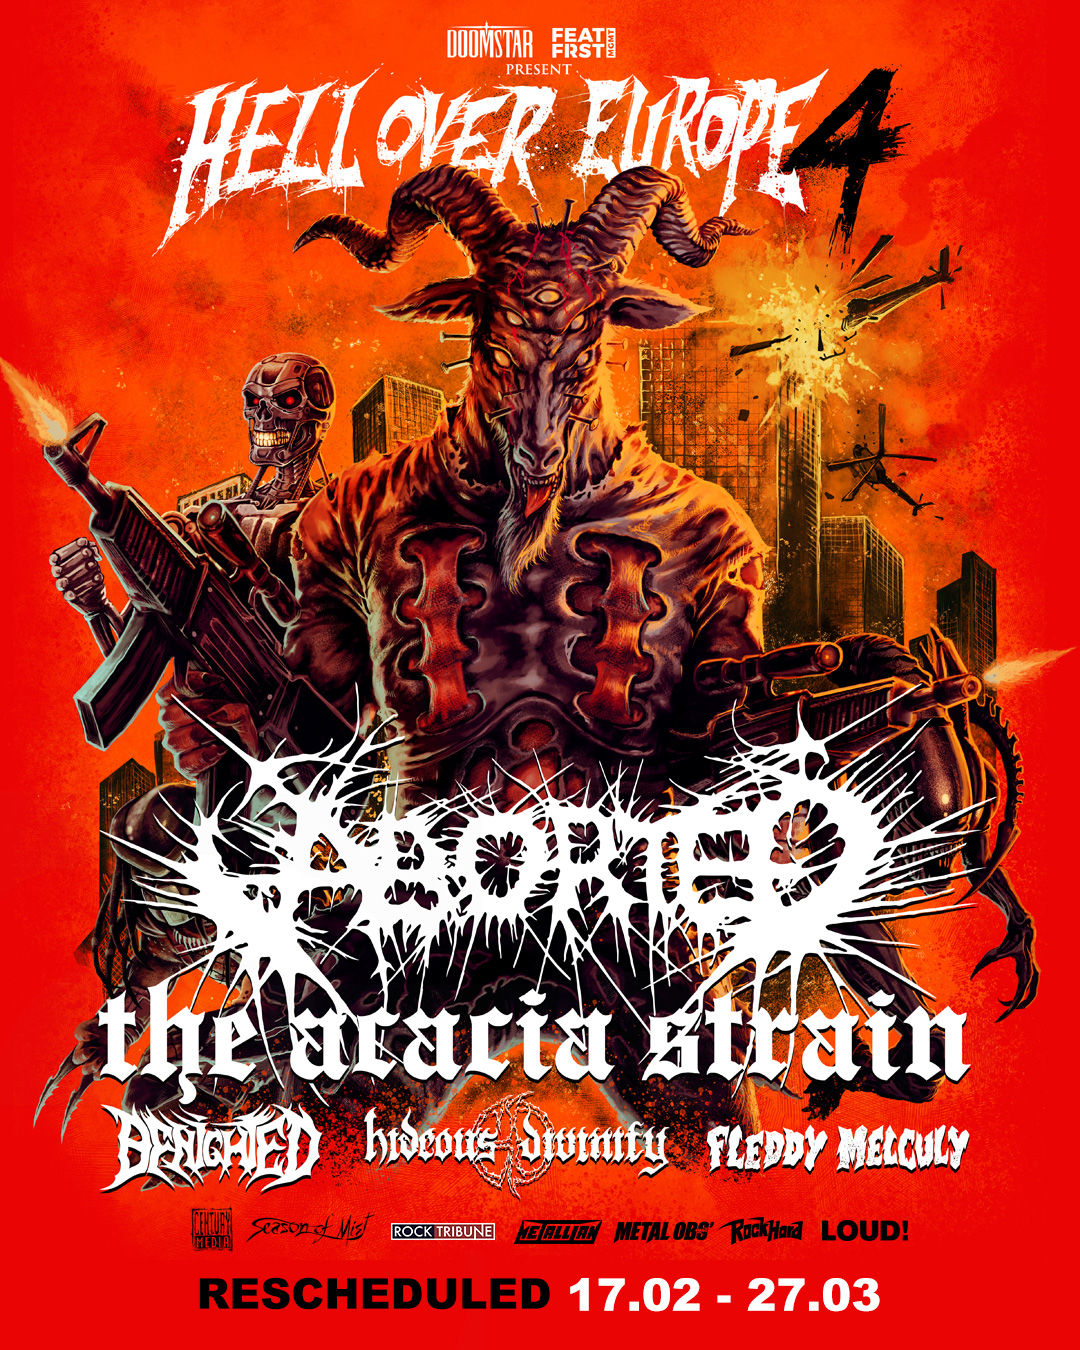 """Aborted """"Hell Over Europe 4"""" featuring special guest; The Acacia Strain,  Benighted, Hideous Divinity and Fleddy Melculy! - DOOMSTAR BOOKINGS"""